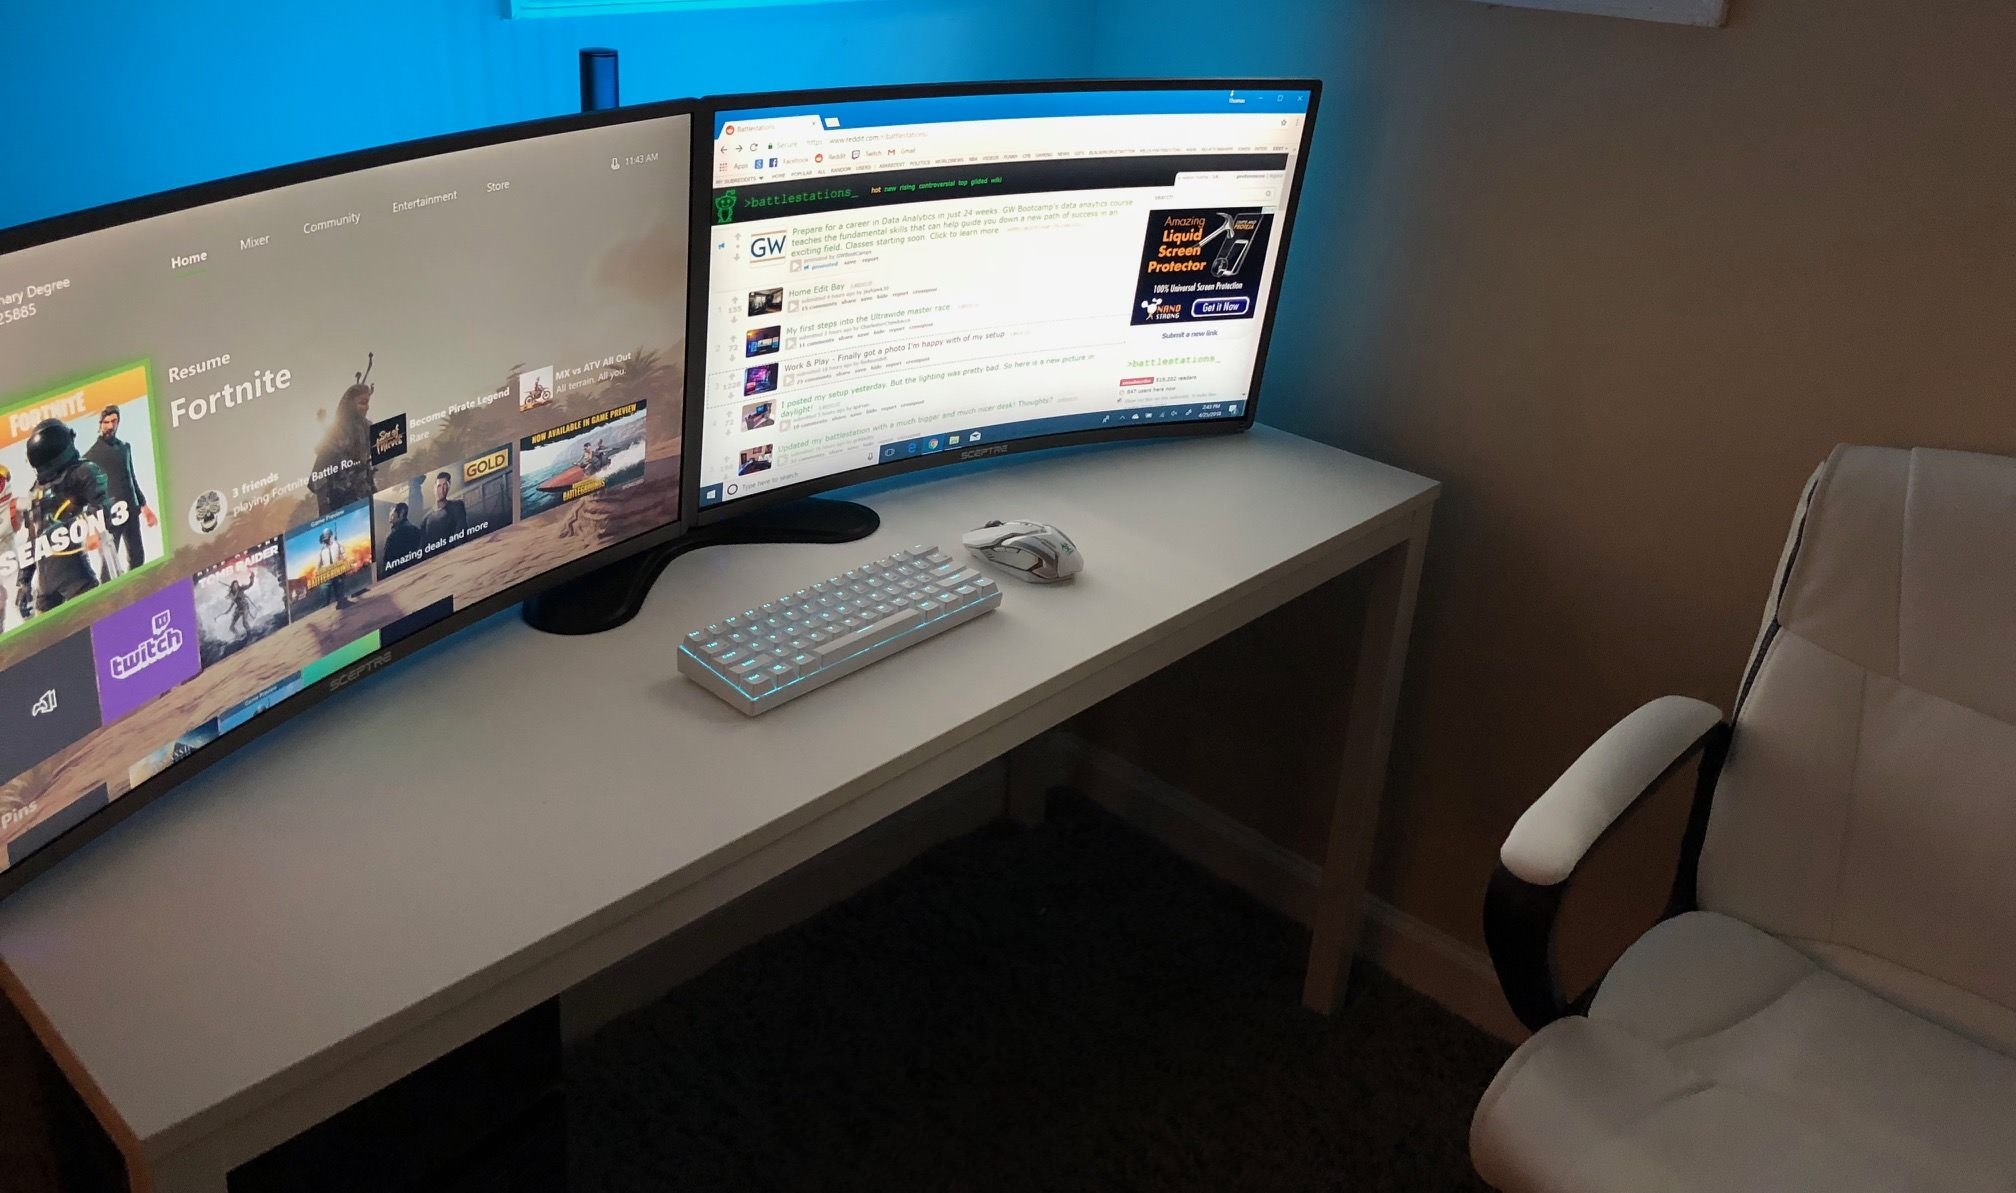 My First Battlestation Everything Is Relatively Cheap And I Use A Surface Pro 4 W A Docking Station Instead Of Gaming Room Setup Home Projects Battlestation